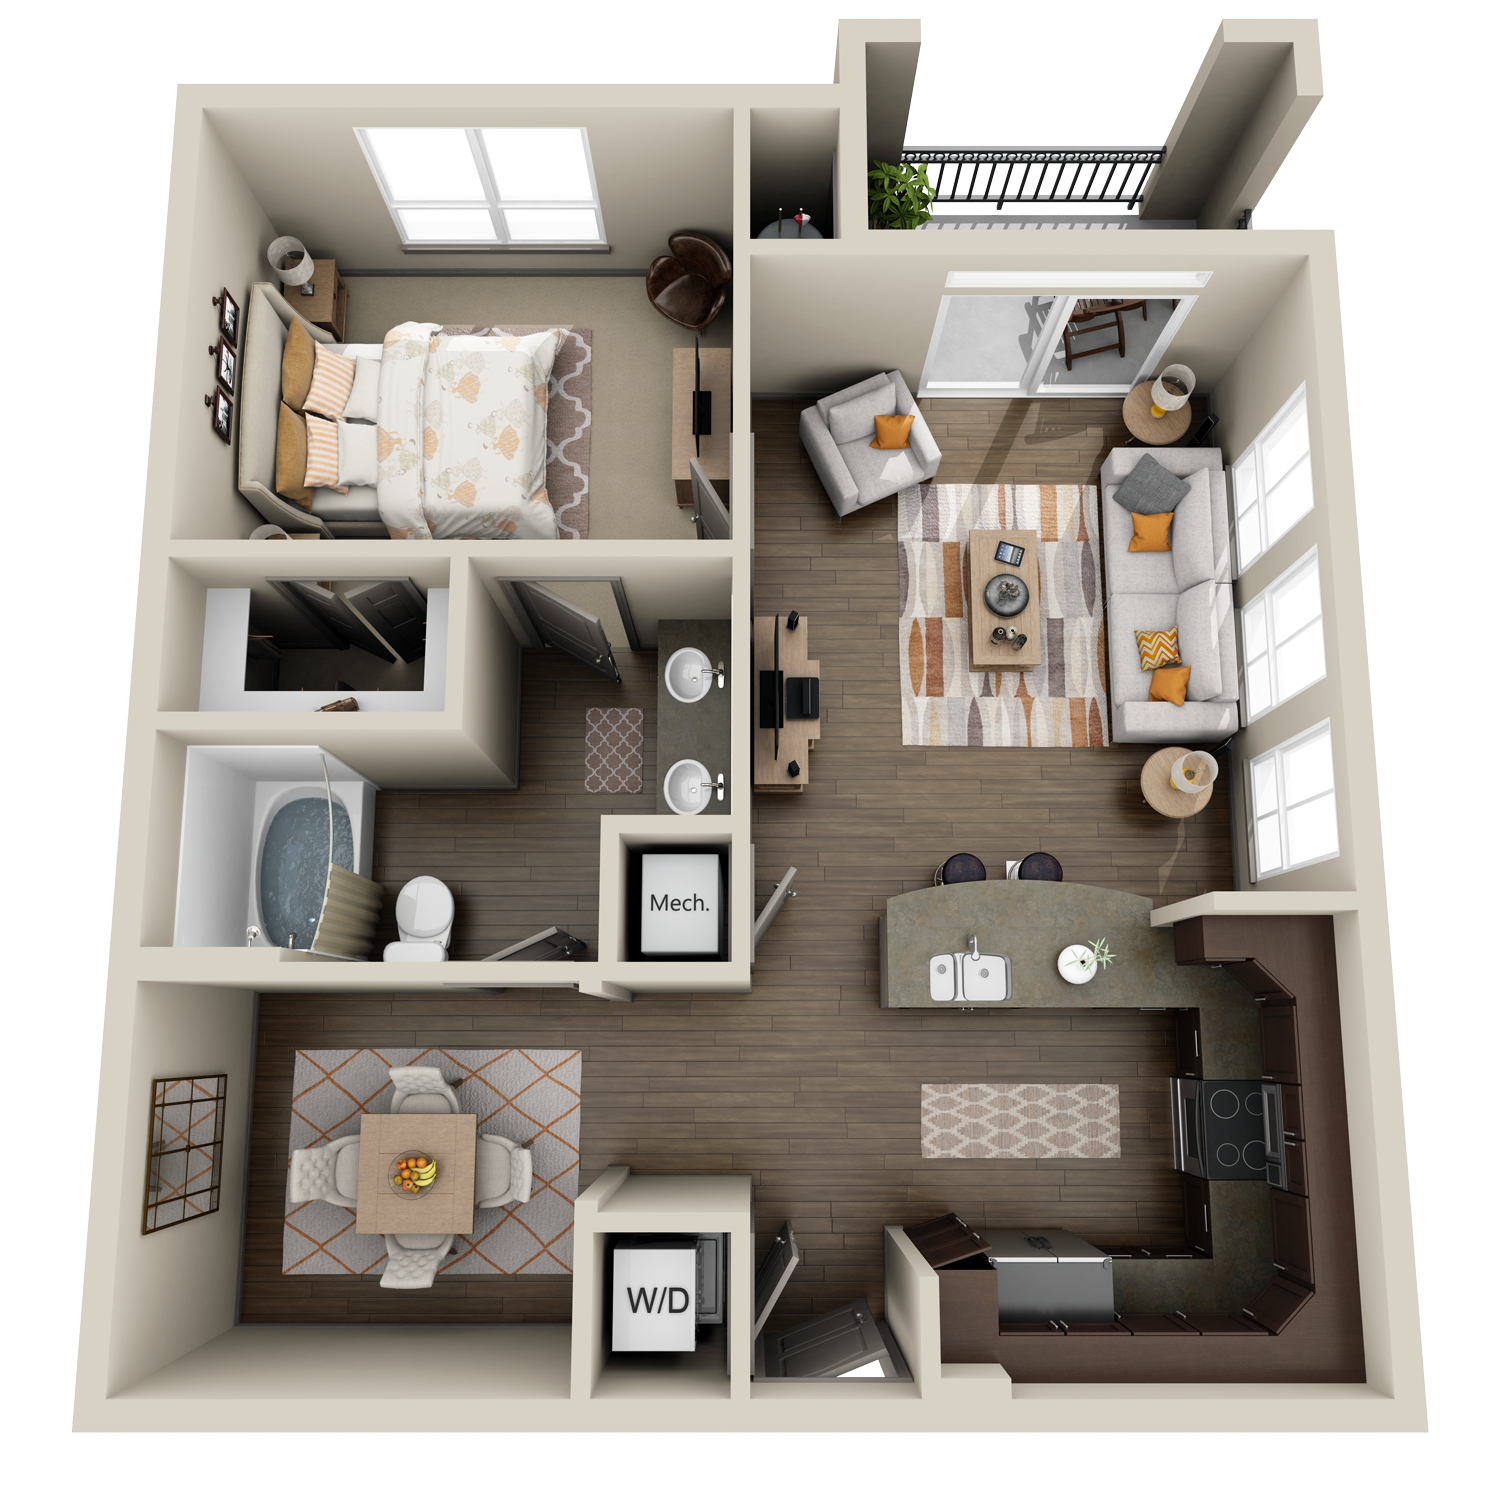 A5 floor plan featuring 1 bed and 1 bath